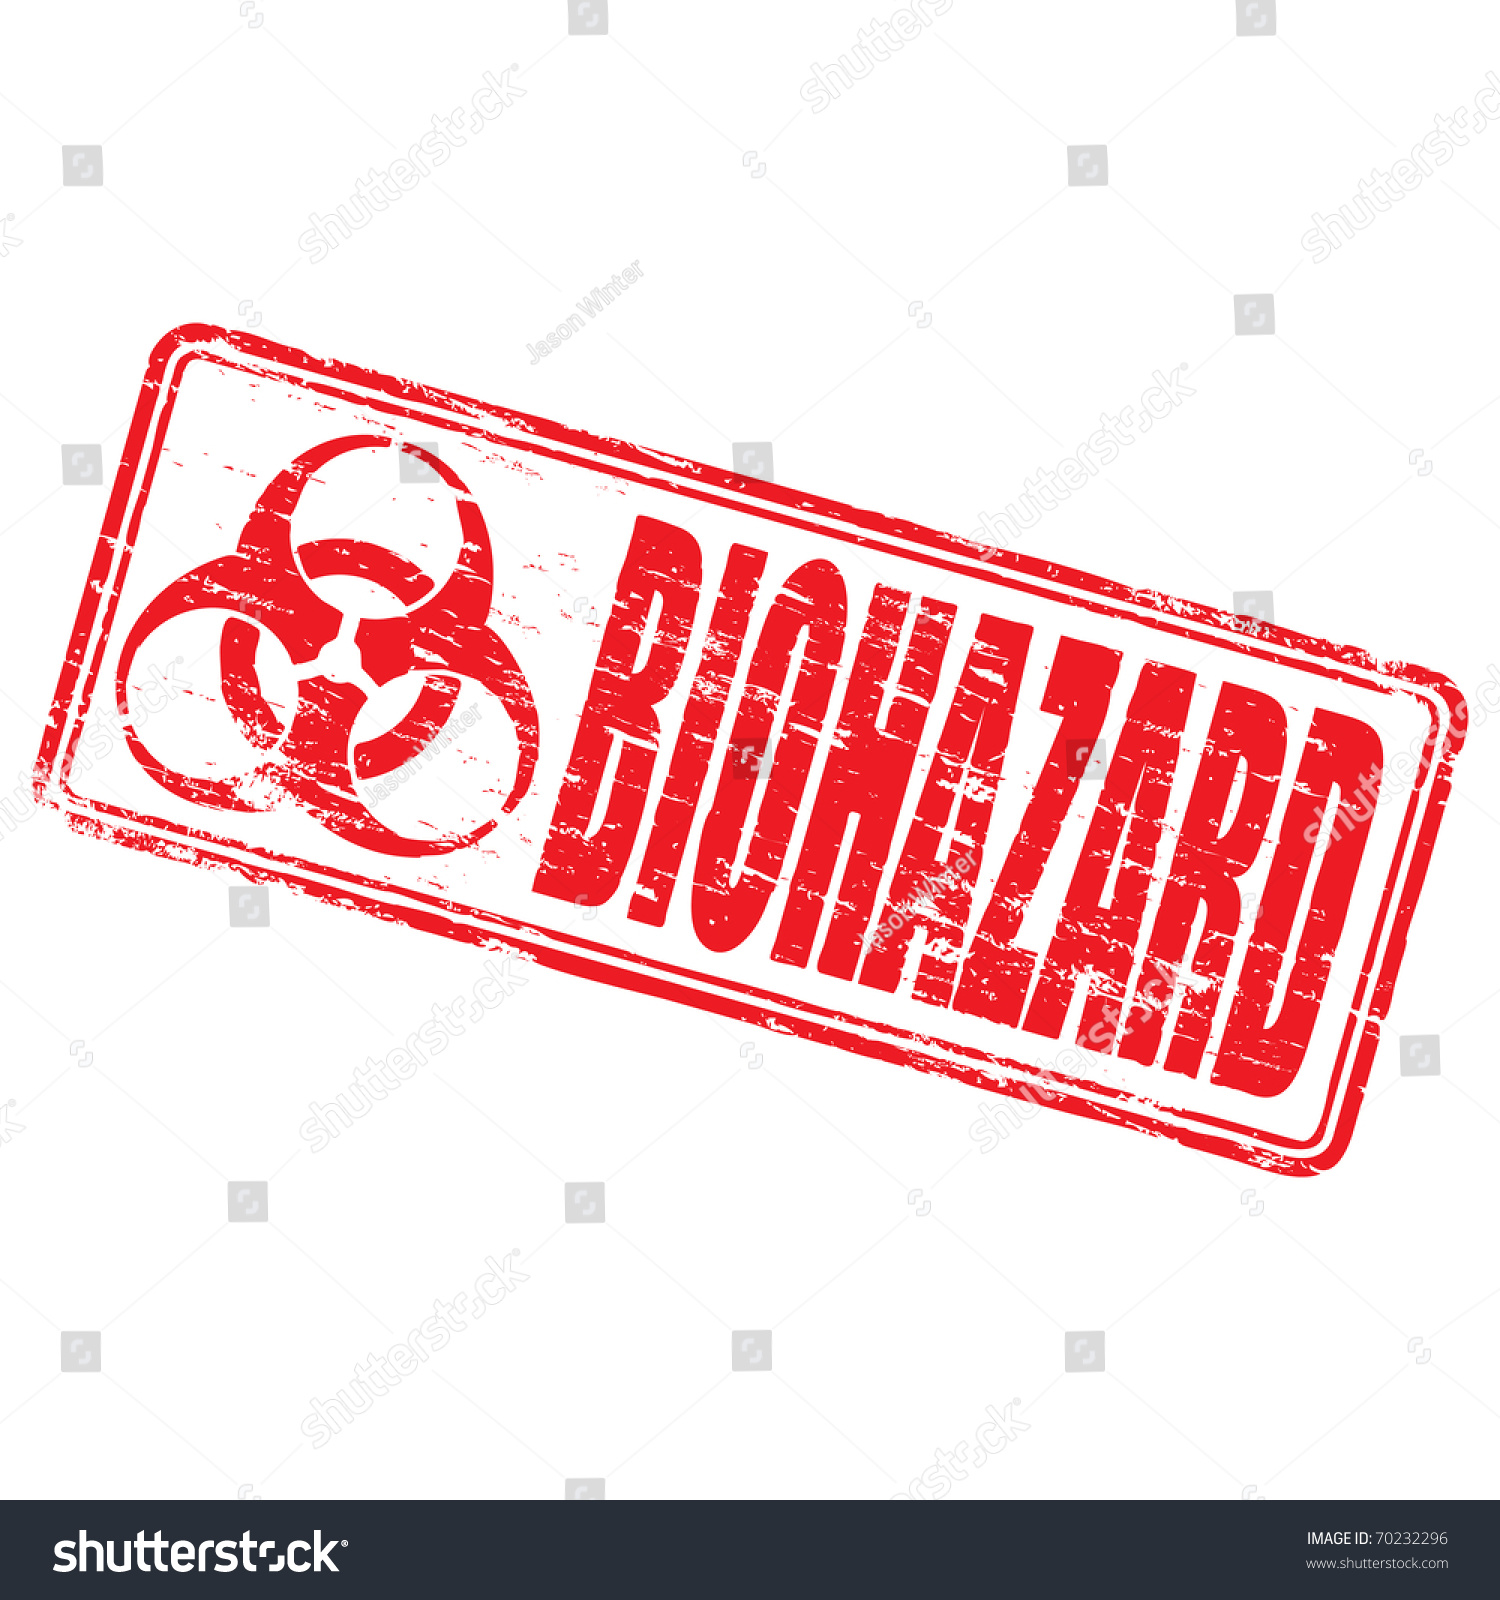 Rubber Stamp Illustration Showing Biohazard Text Stock Illustration